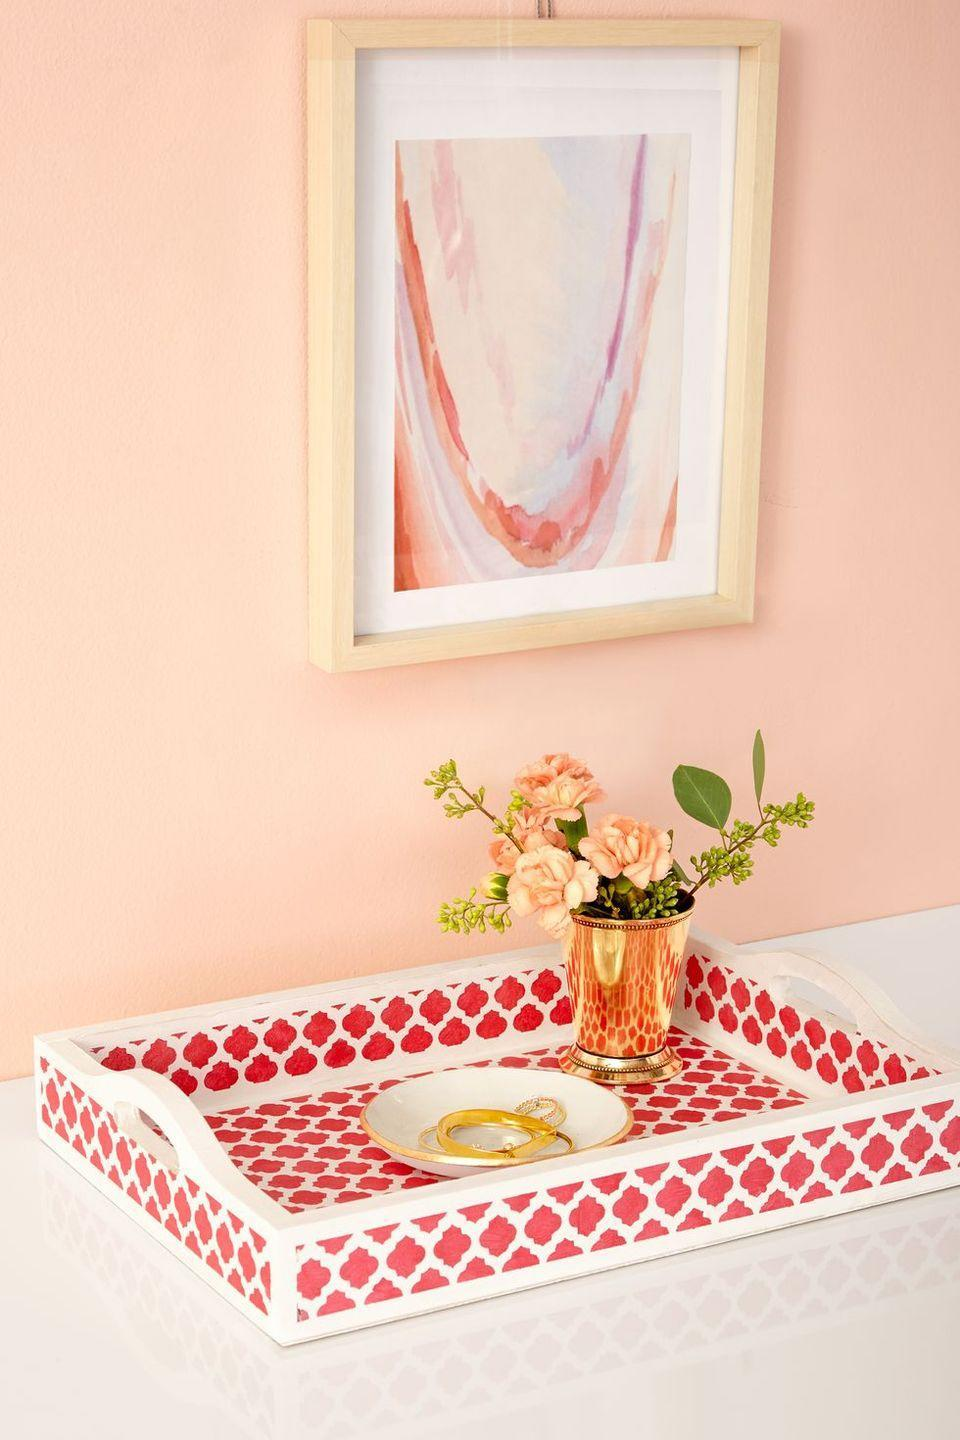 """<p>This delicate patterned tray is the perfect way to <a href=""""https://www.womansday.com/food-recipes/g2947/breakfast-in-bed/"""" rel=""""nofollow noopener"""" target=""""_blank"""" data-ylk=""""slk:serve Mom a tasty breakfast in bed"""" class=""""link rapid-noclick-resp"""">serve Mom a tasty breakfast in bed</a>. </p><p><strong><em><a href=""""https://www.womansday.com/life/g2913/easy-spring-crafts/?slide=3"""" rel=""""nofollow noopener"""" target=""""_blank"""" data-ylk=""""slk:Get the Patterned Tray tutorial"""" class=""""link rapid-noclick-resp"""">Get the Patterned Tray tutorial</a>. </em></strong></p>"""